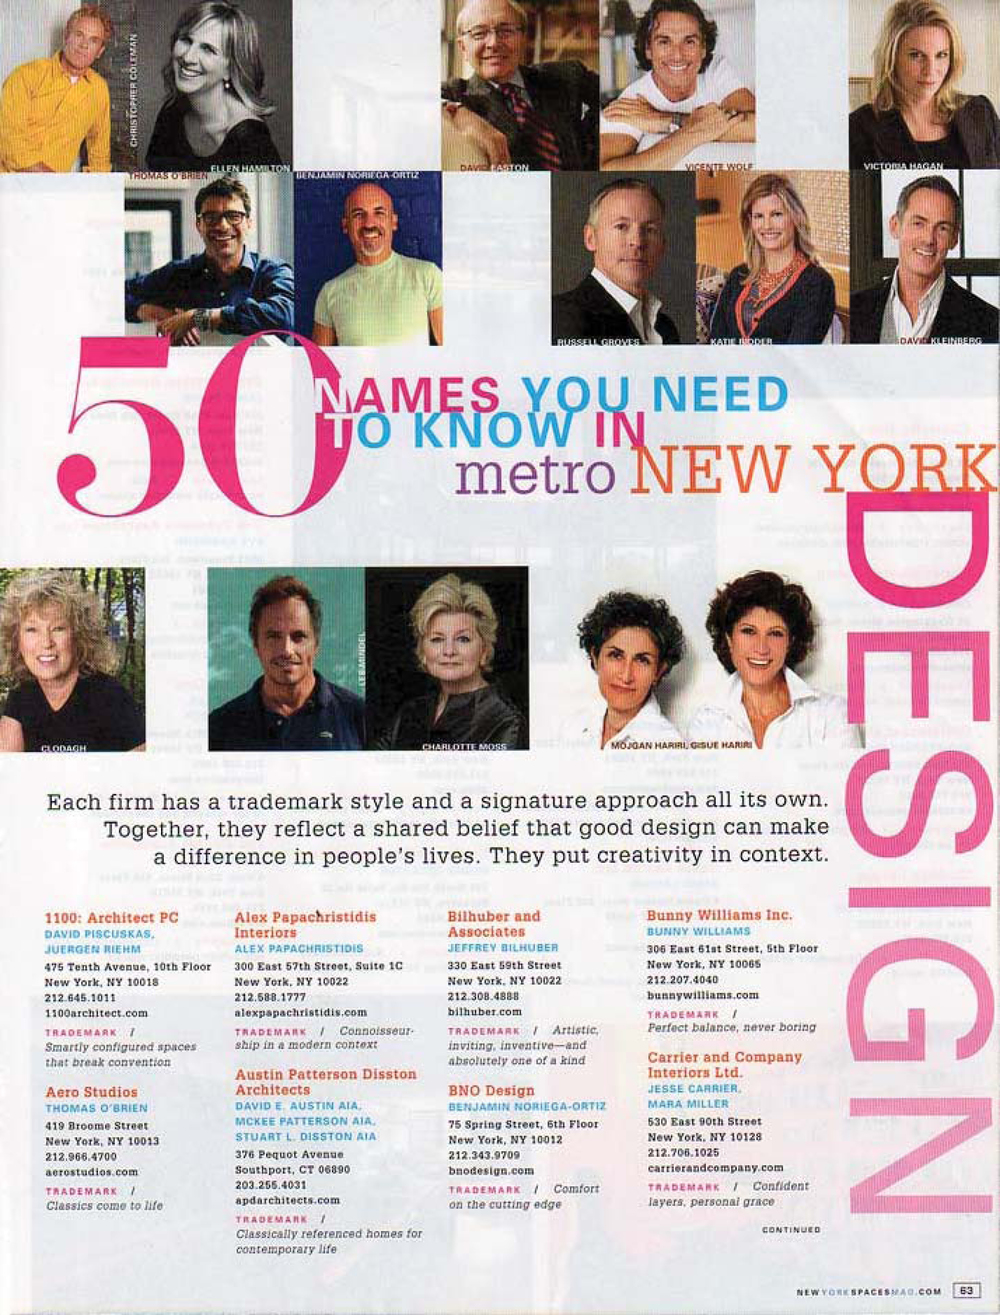 New_York_Spaces_2010_Top_50_Designers 2.jpg